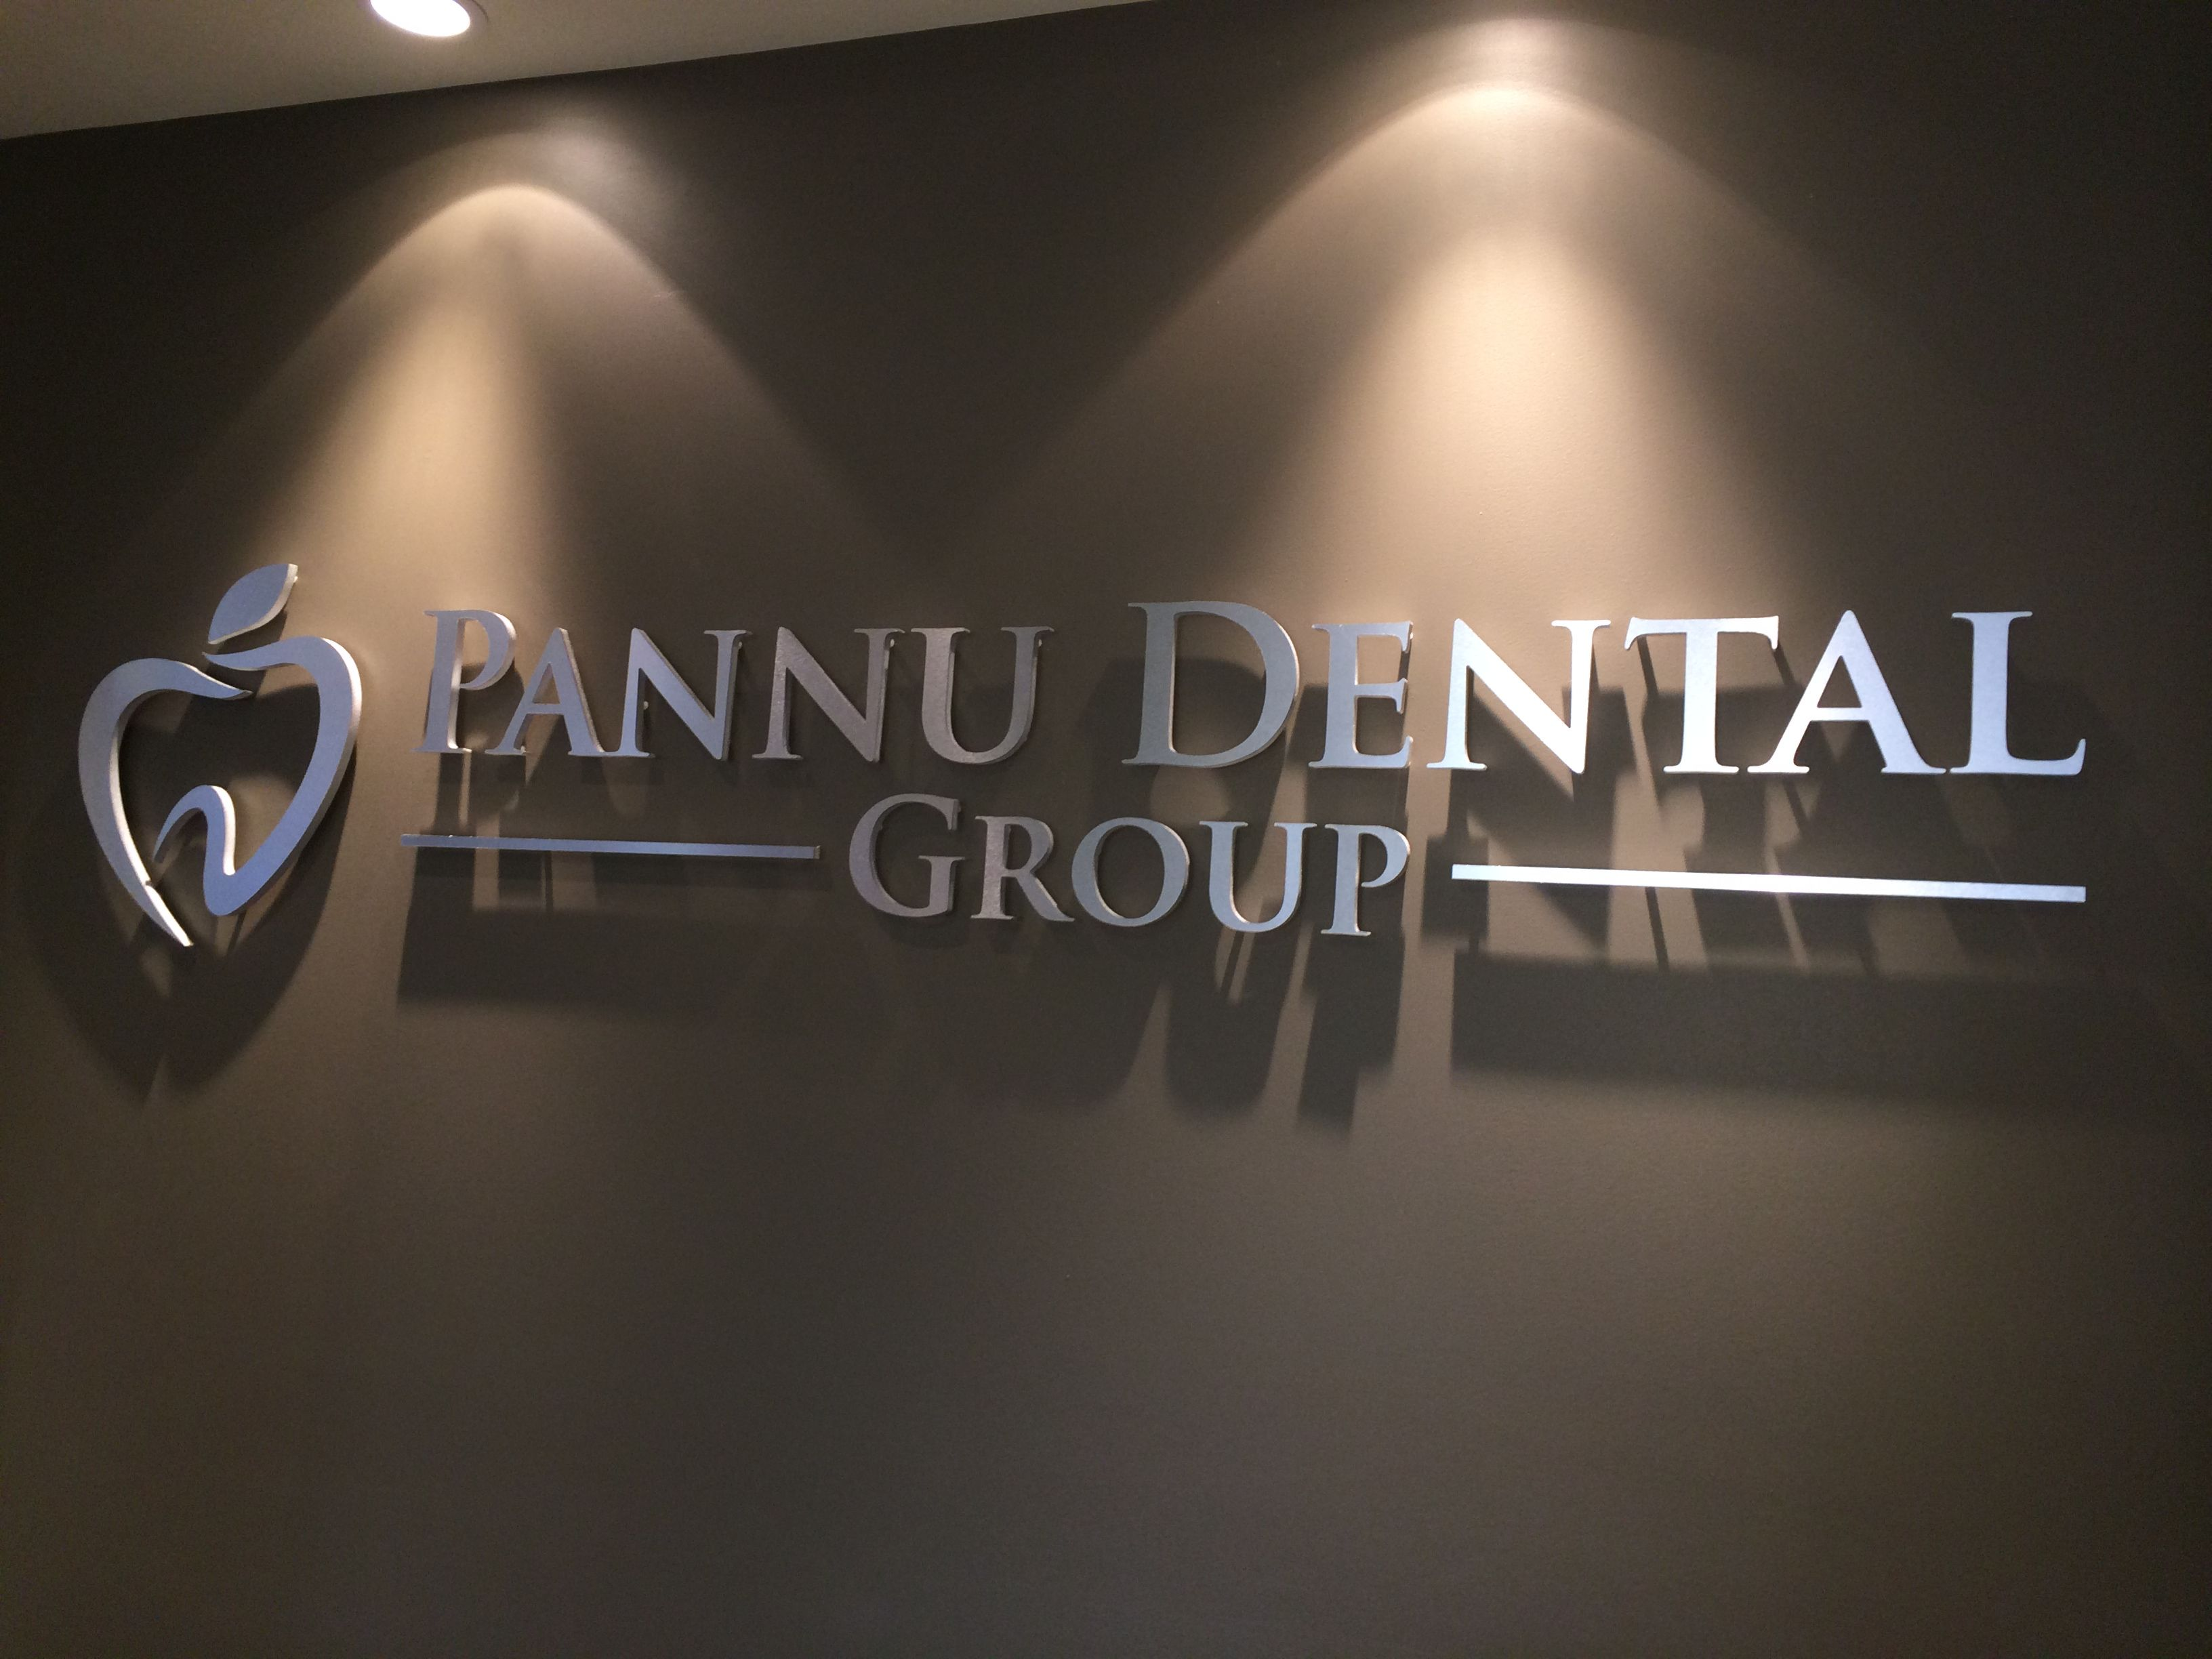 Brushed metal finish dentist office wall sign mounted with studs ...